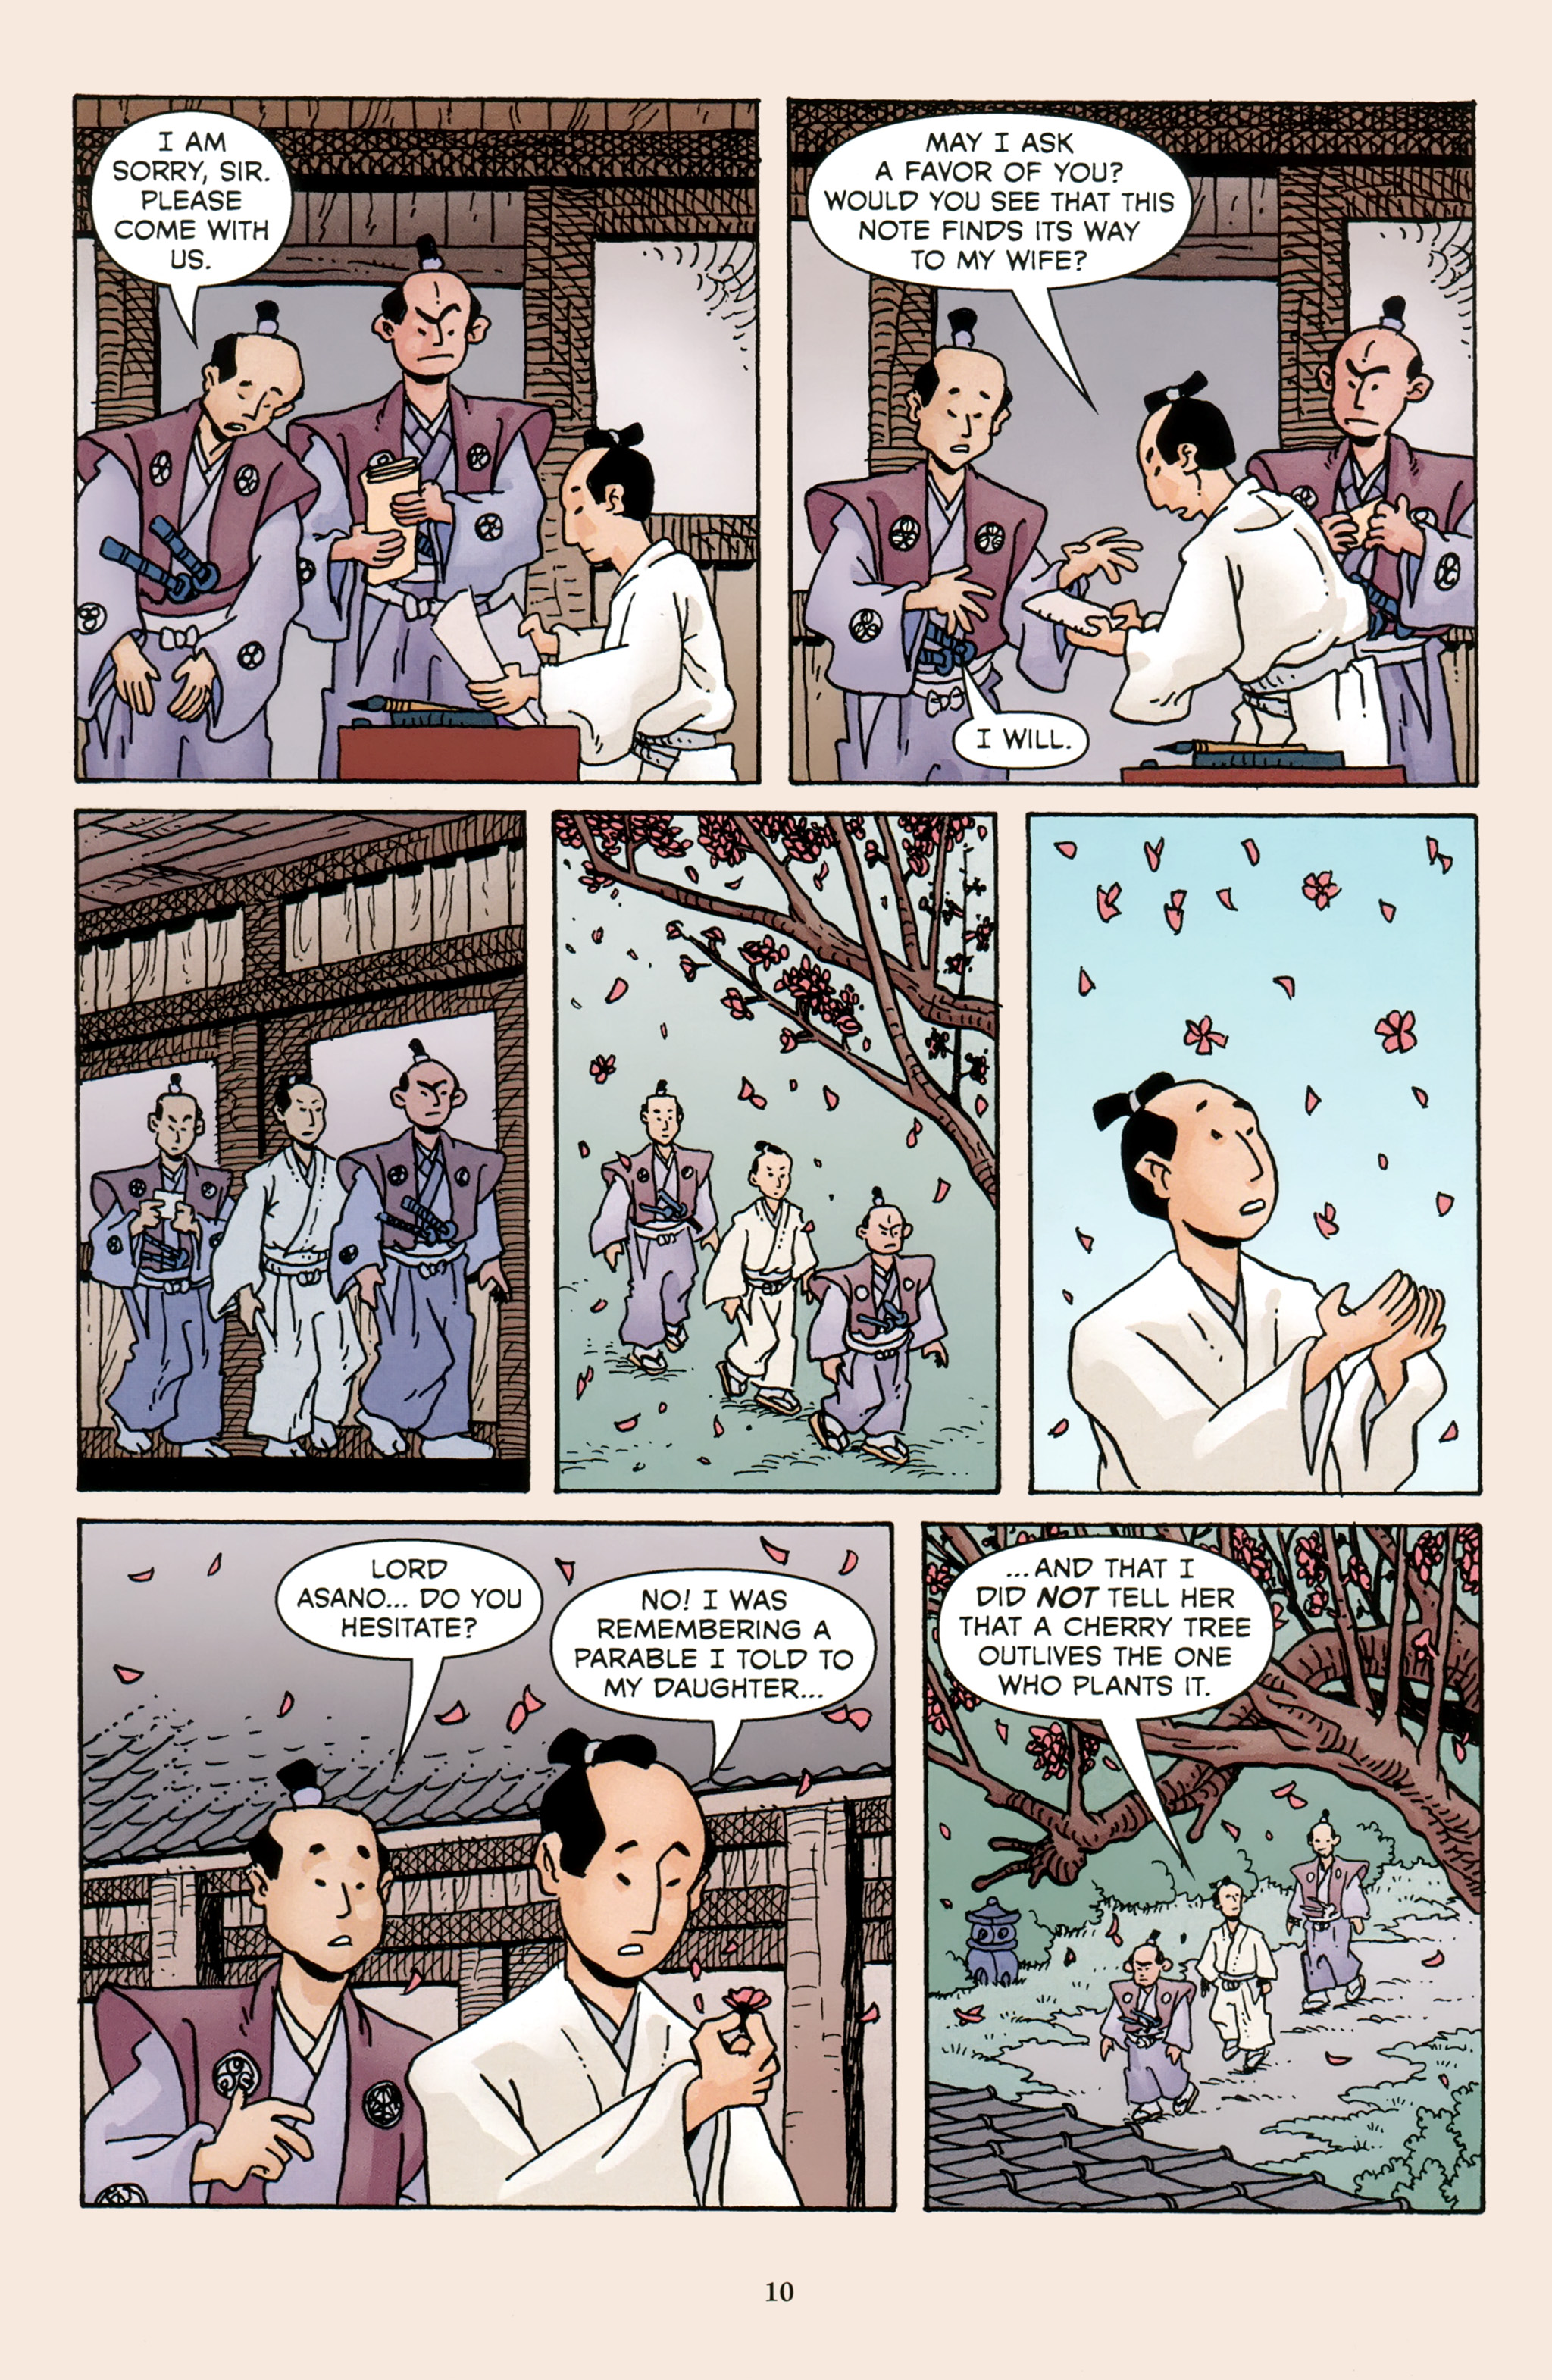 47 Ronin #2 - Read 47 Ronin Issue #2 Page 12